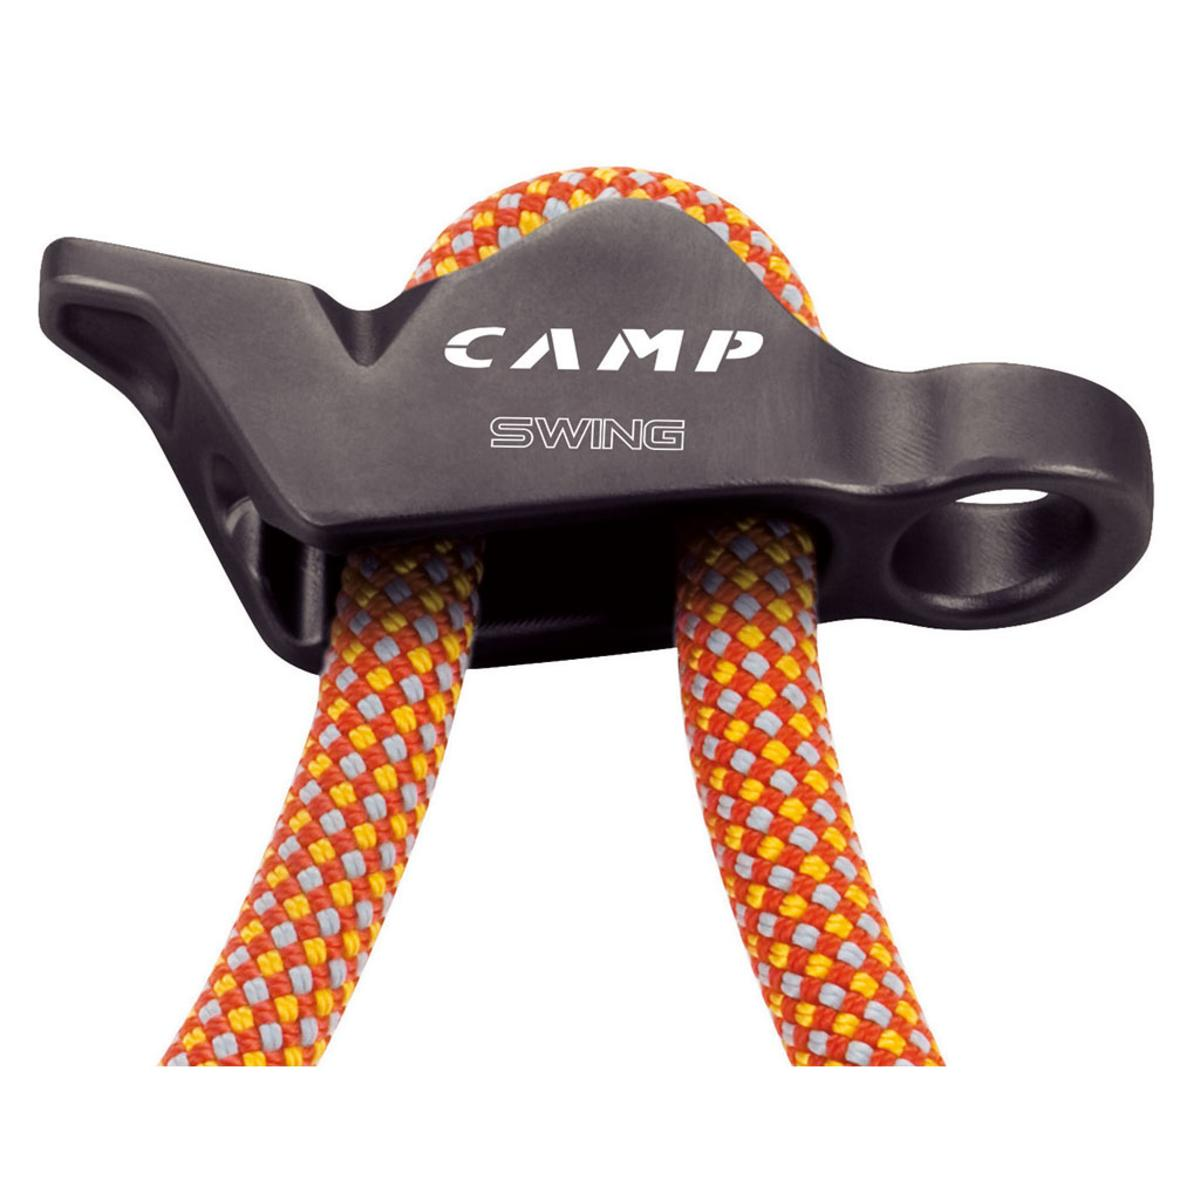 Camp USA Swing Dynamic Belay Lanyard